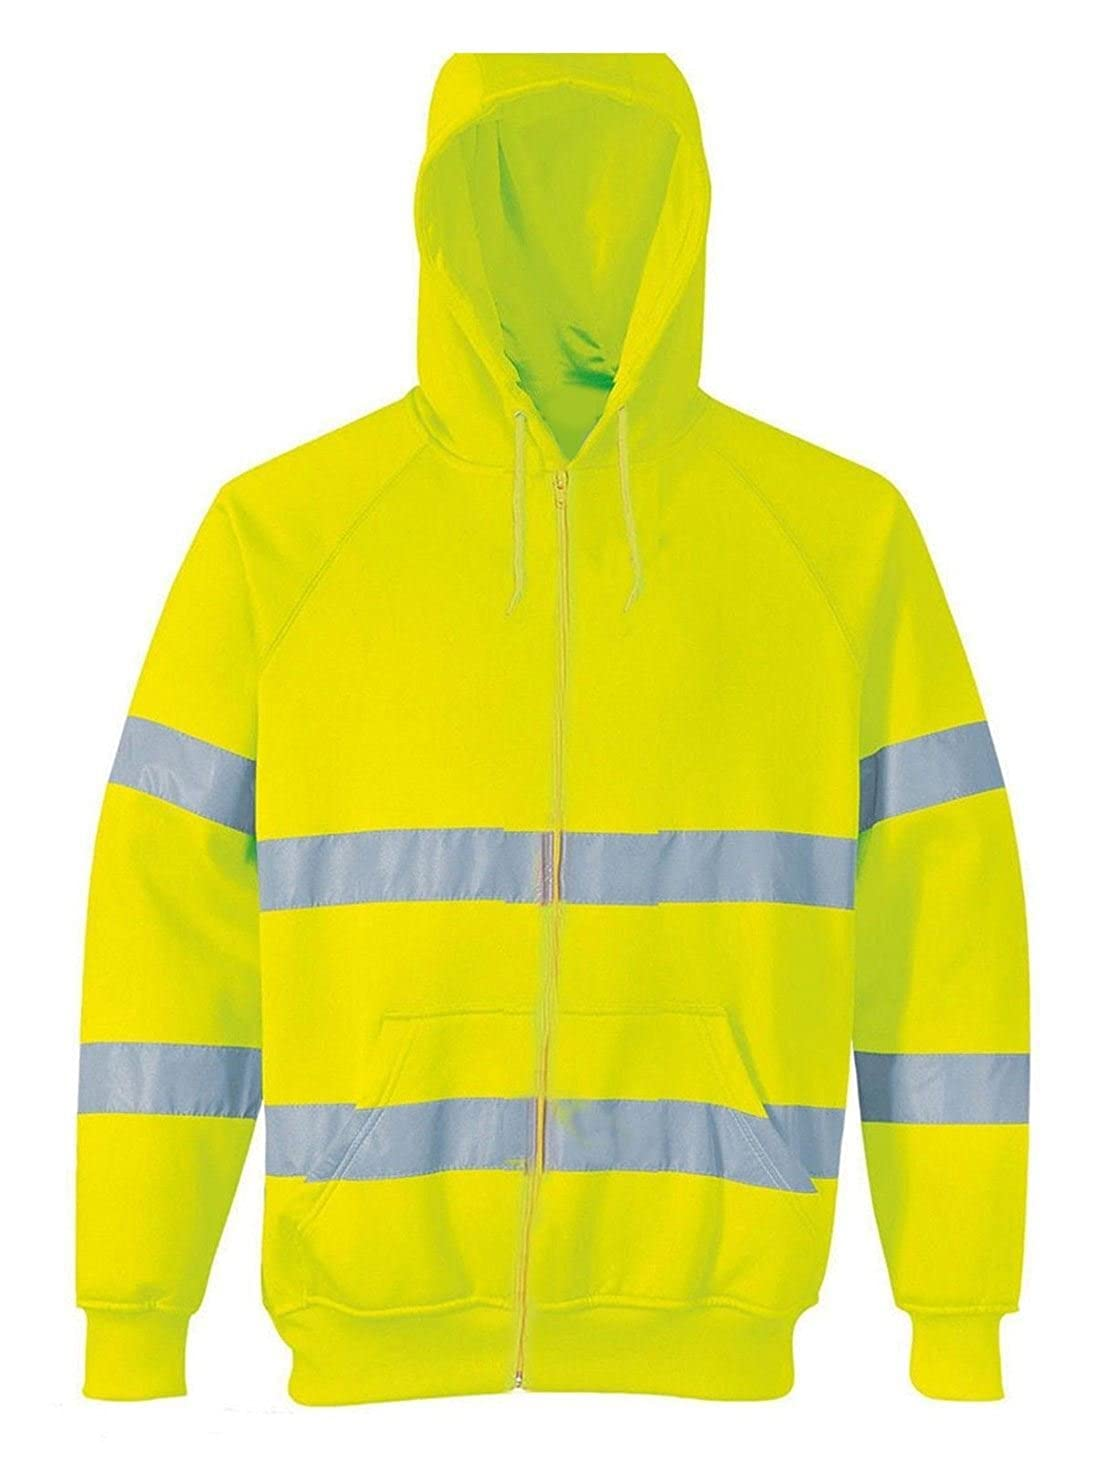 FASHION FAIRIES Mens Hi VIS High Visibility Zip Up Hooded Hoodie Jacket Boys Reflective Trouser